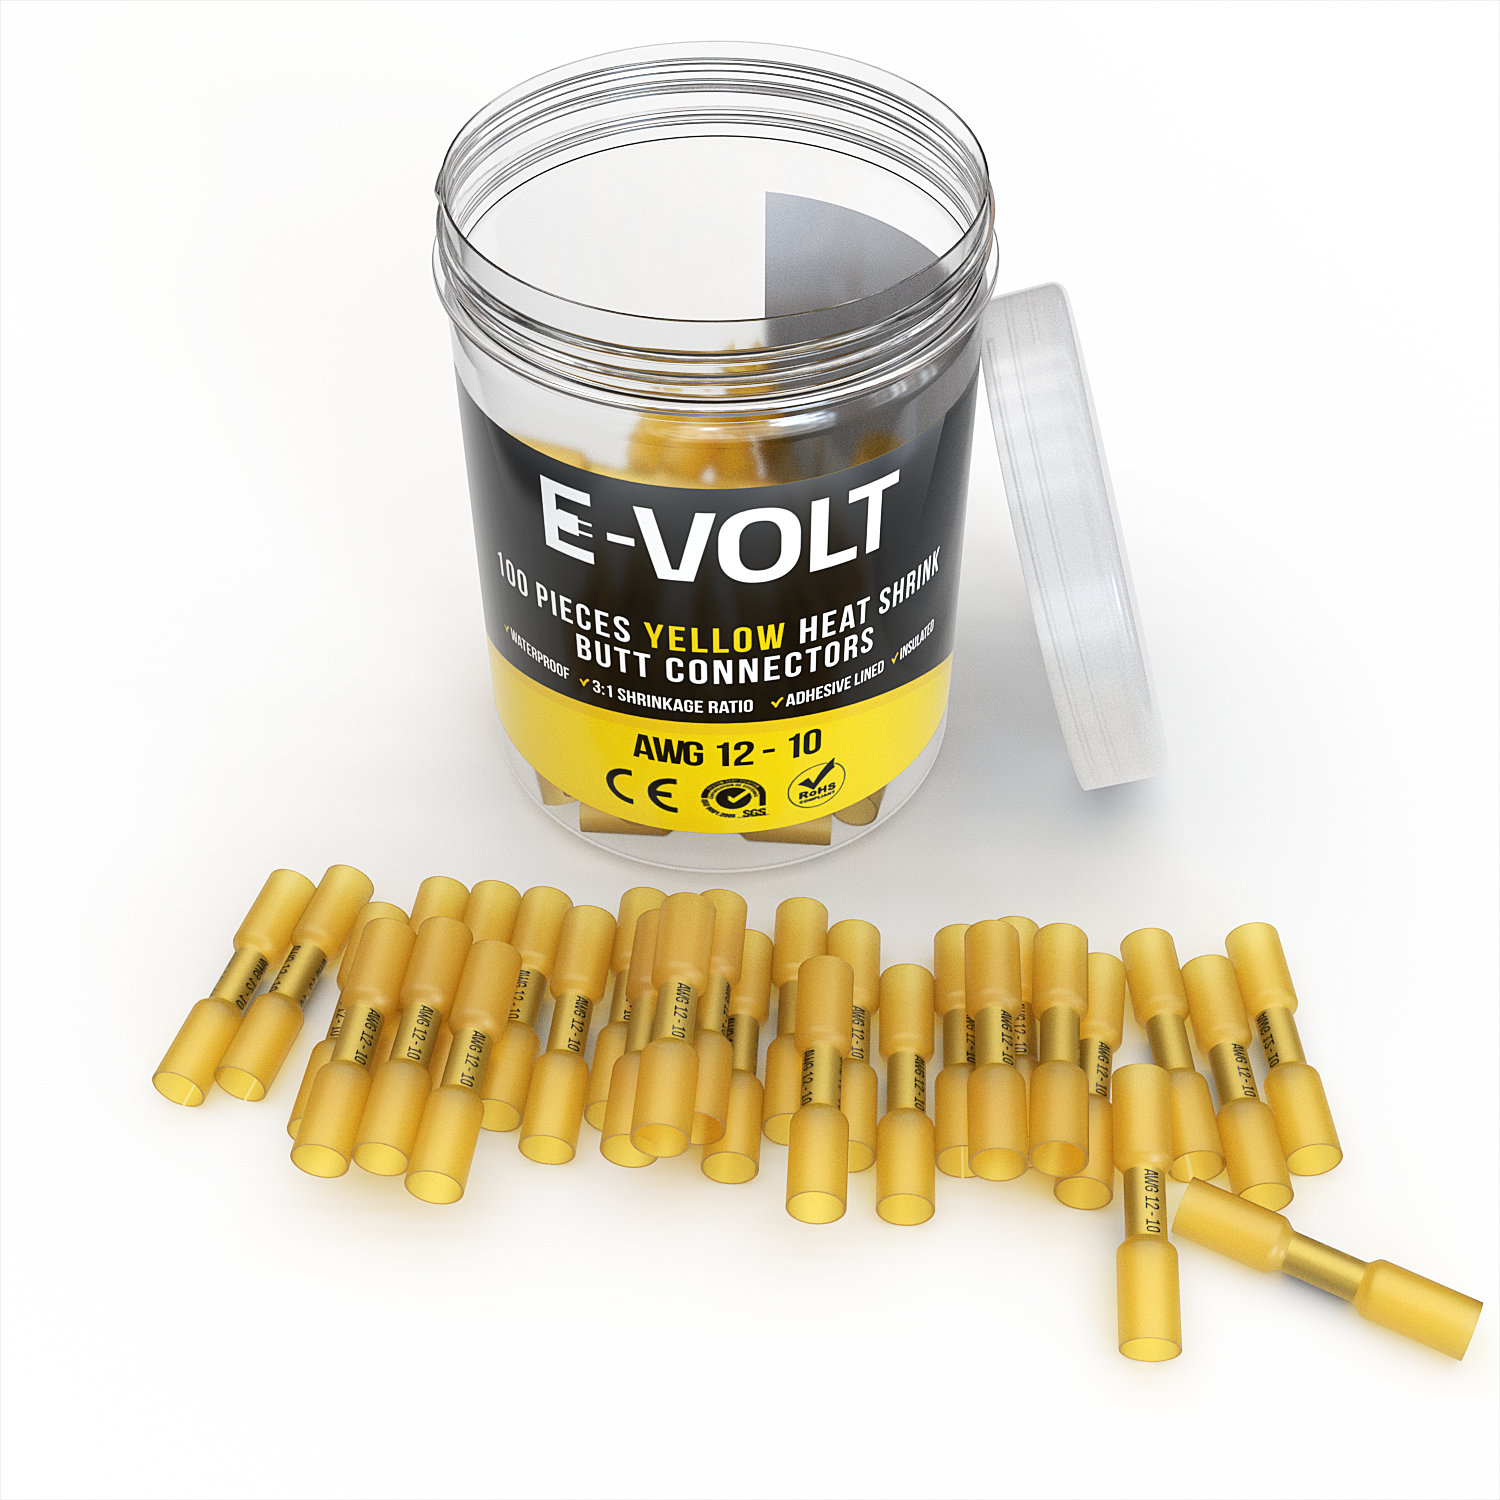 100 PC 12-10 Gauge Yellow Heat Shrink Butt Crimp Connectors